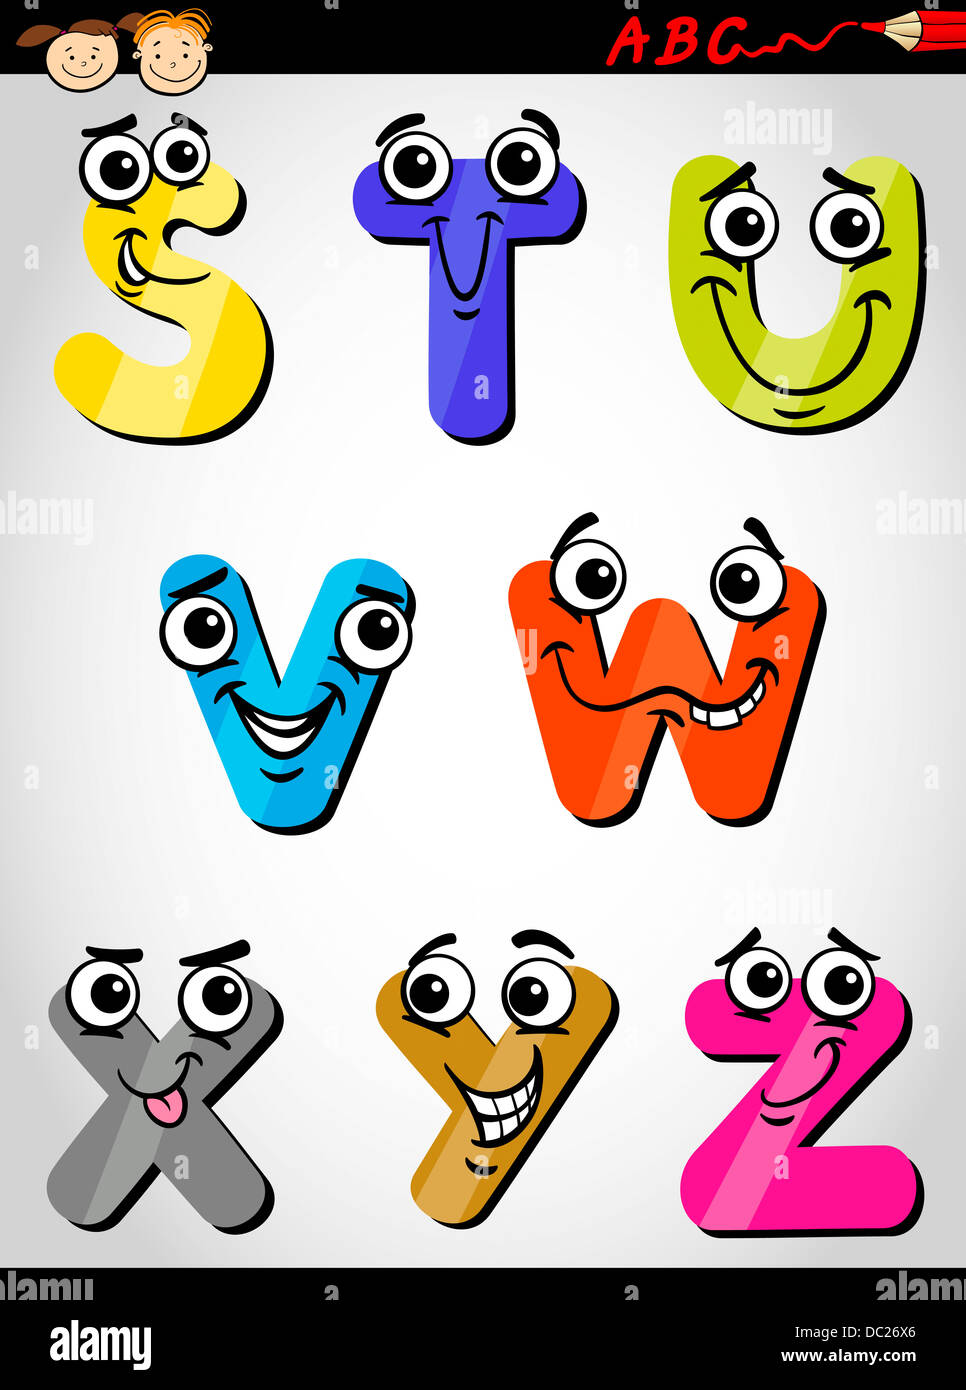 Cartoon Illustration Of Funny Capital Letters Alphabet From S To Z For Children Education